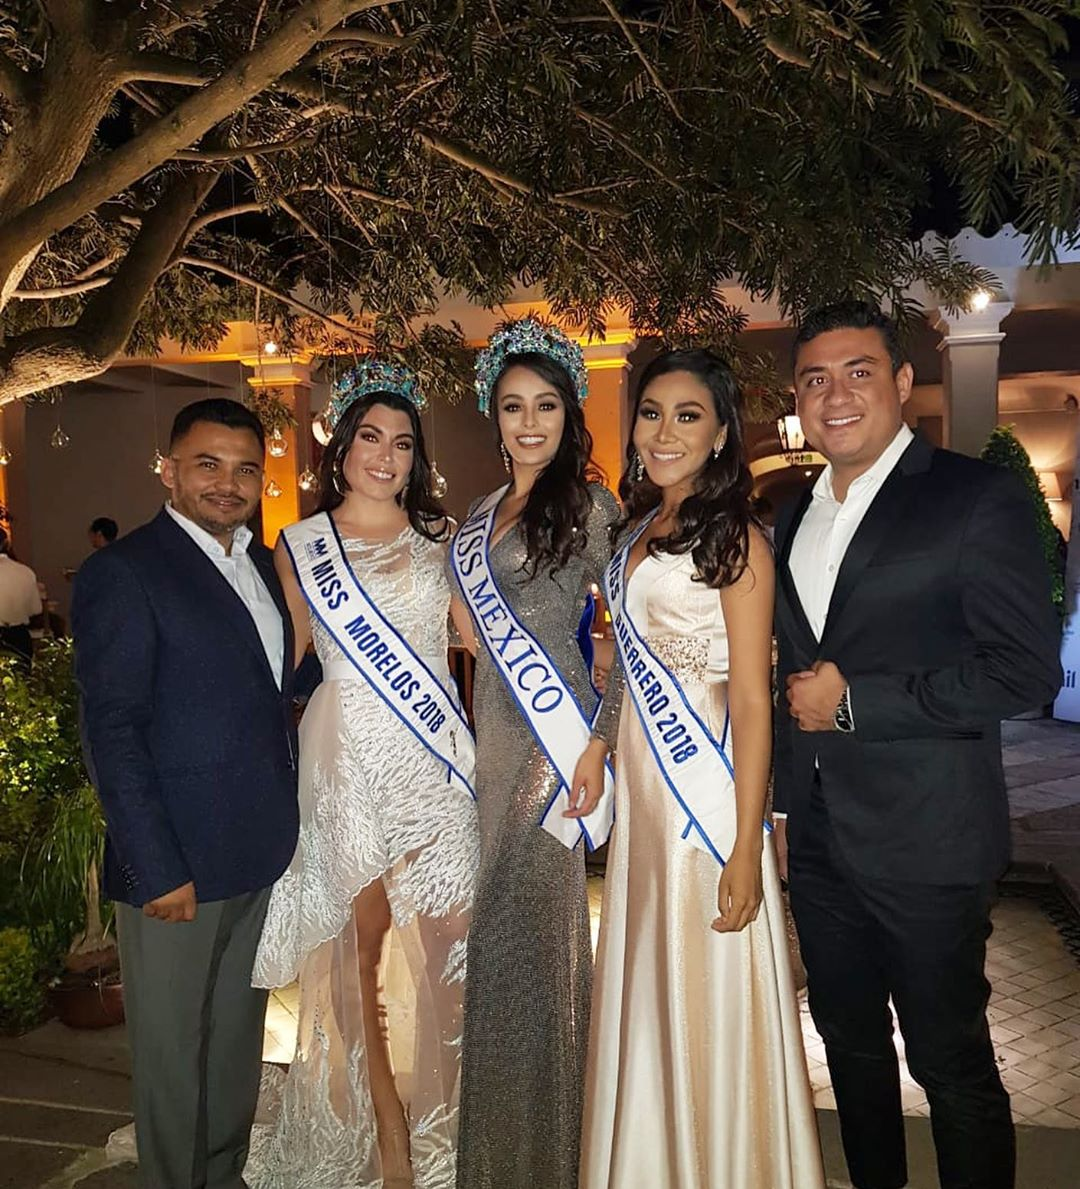 ashley alvidrez, top 12 de miss world 2019. - Página 6 72270010